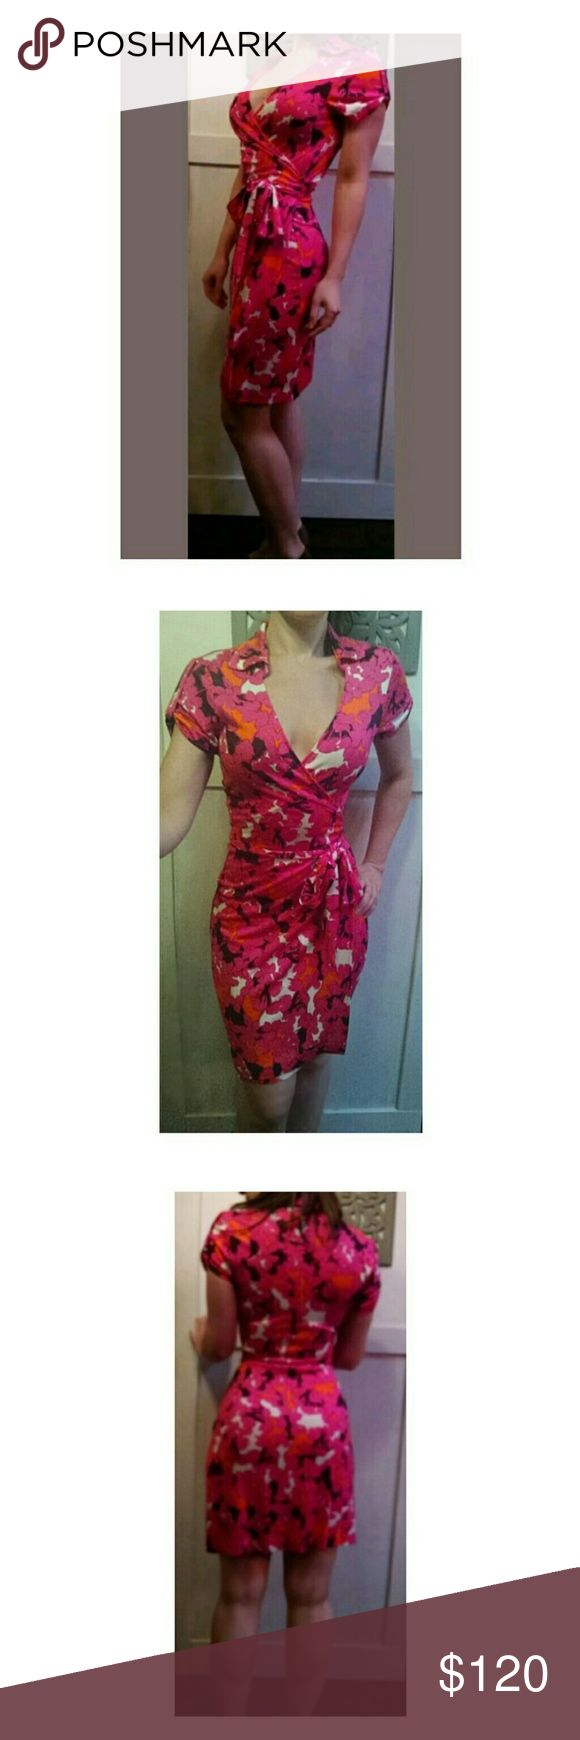 "DVF Pink Floral Deep V Cap Sleeve Wrap Dress Gorgeous DVF ""Jilda Two"" wrap dress in a bright pink floral print. Features a Deep V, tie enclosure, collared neckline and cap sleeves. The cut of DVF wrap dresses are flirty, flattering and fun. You will love this!!?  Tagged as size 10. This dress seems to run a little small. A US 6-10 would work here. Given the style of the dress, the below measurements are variable (plus or minus) by a couple inches.  Measurements taken laying flat: Bust: 17""…"